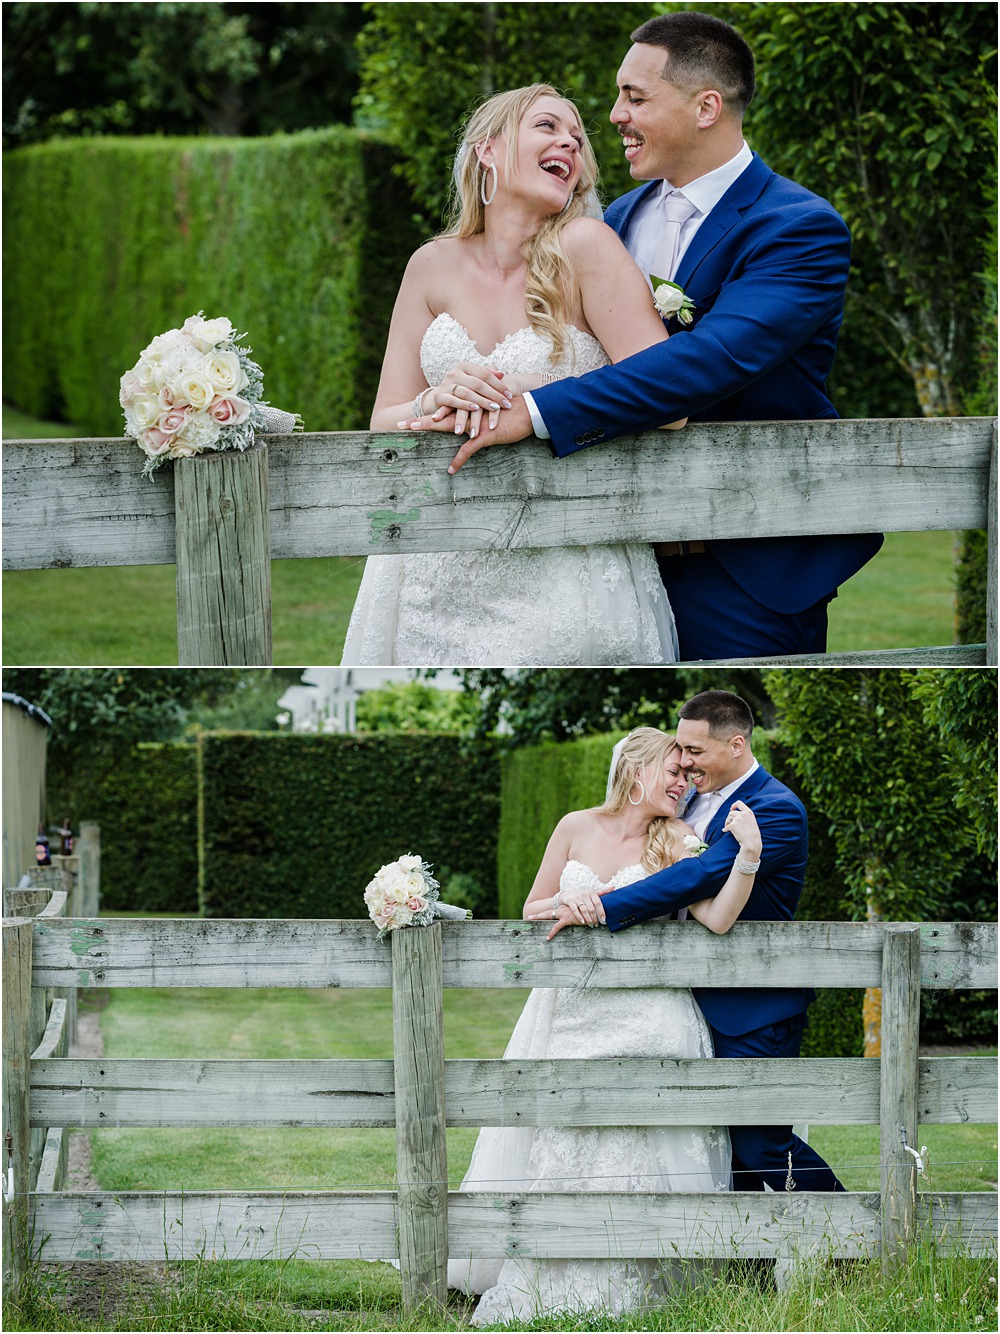 photos of bridal and groom having a laugh in front of a wooden fence at a lacebark wedding